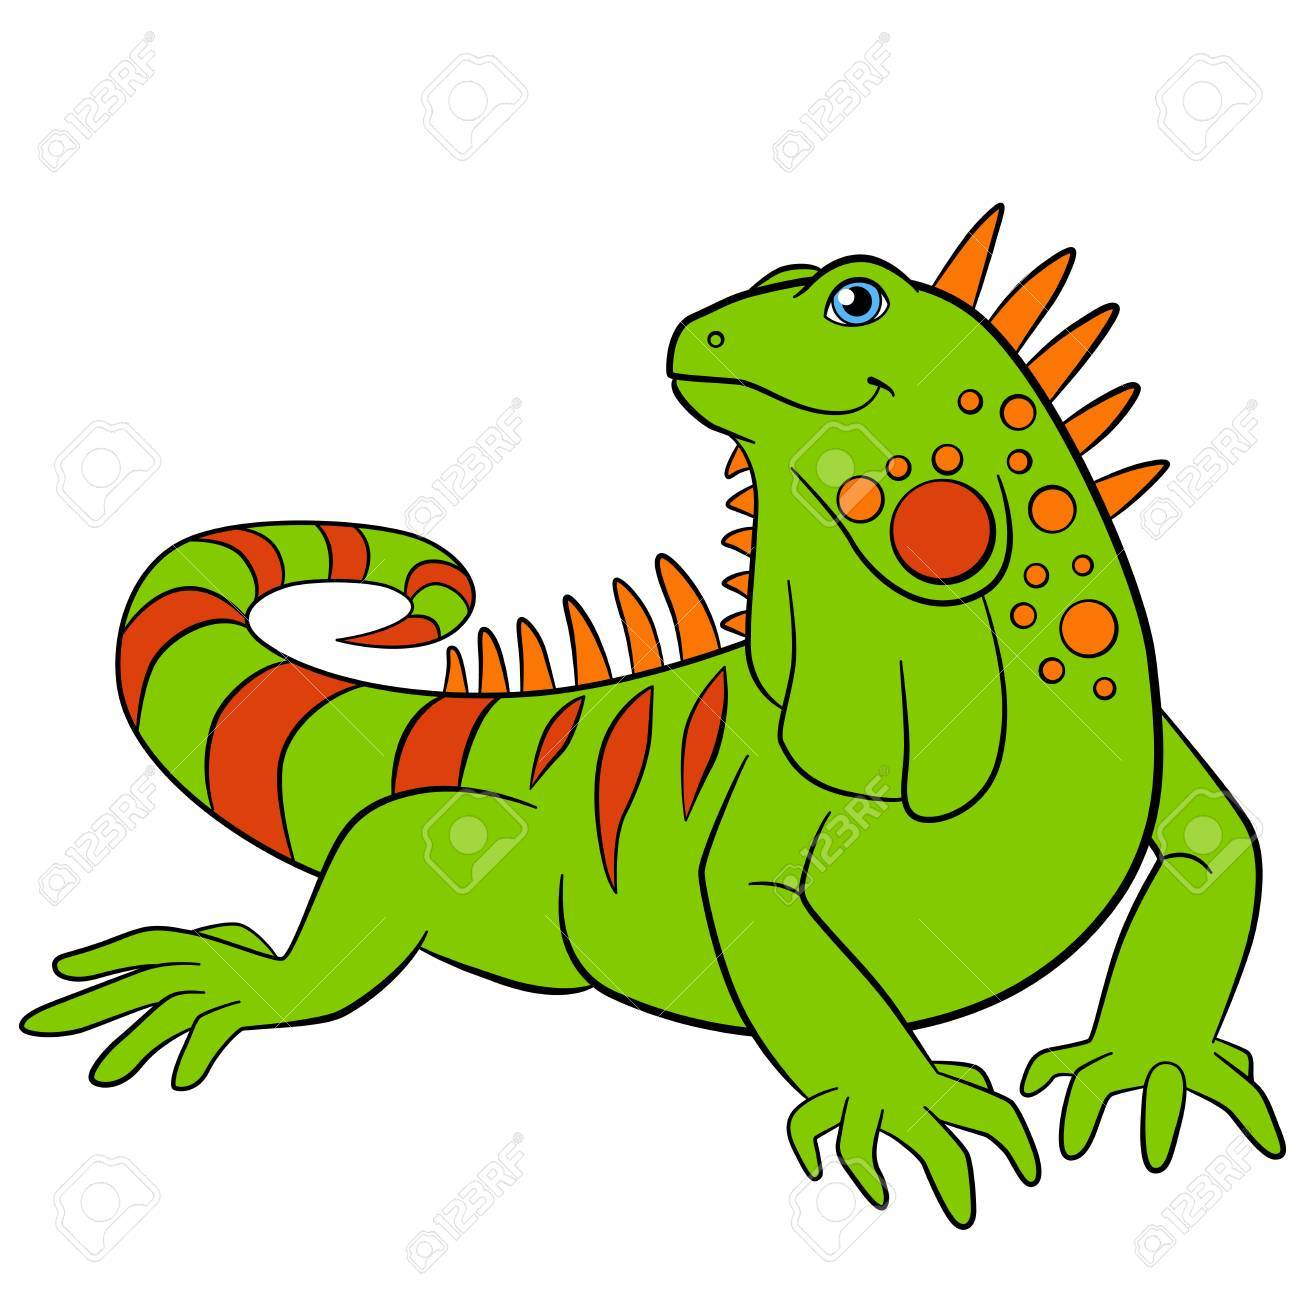 Cartoon animals. Cute green iguana sits and smiles..